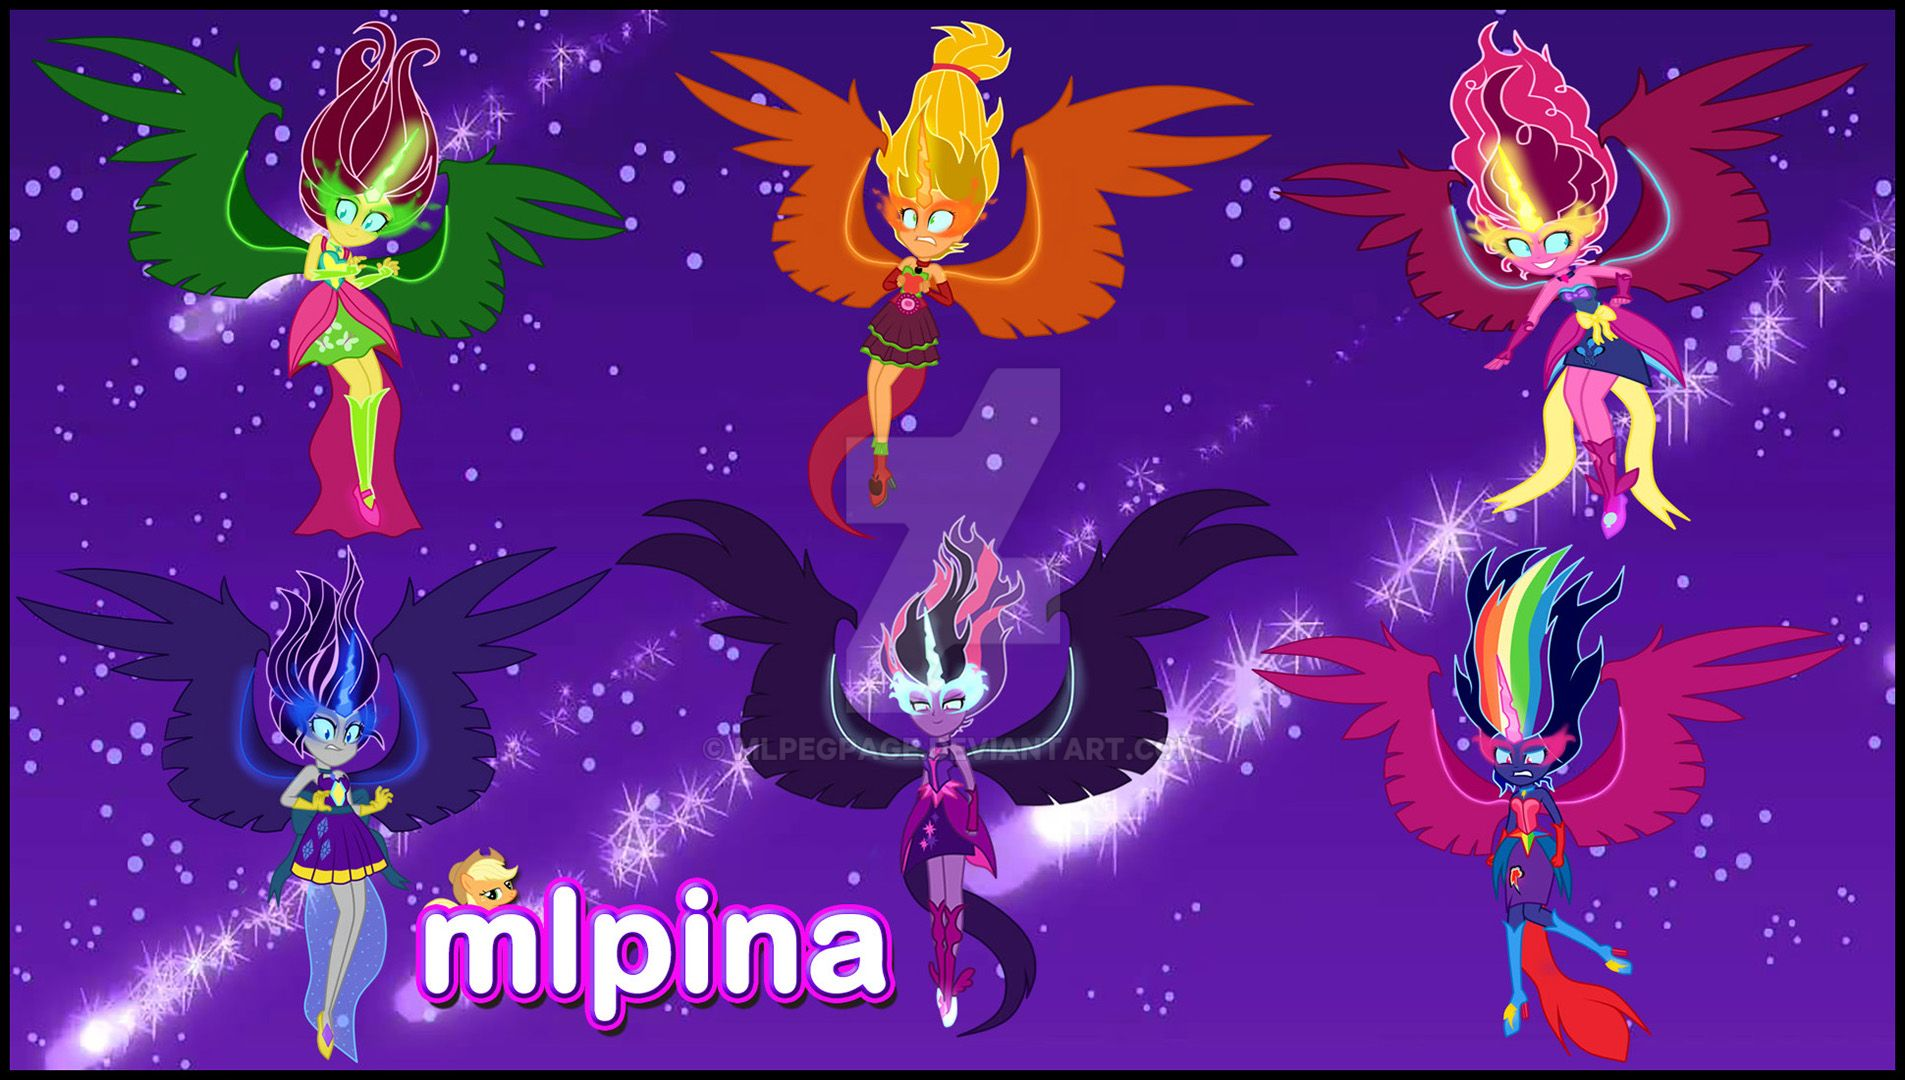 mlp mane 6 transform into human evil equestria by